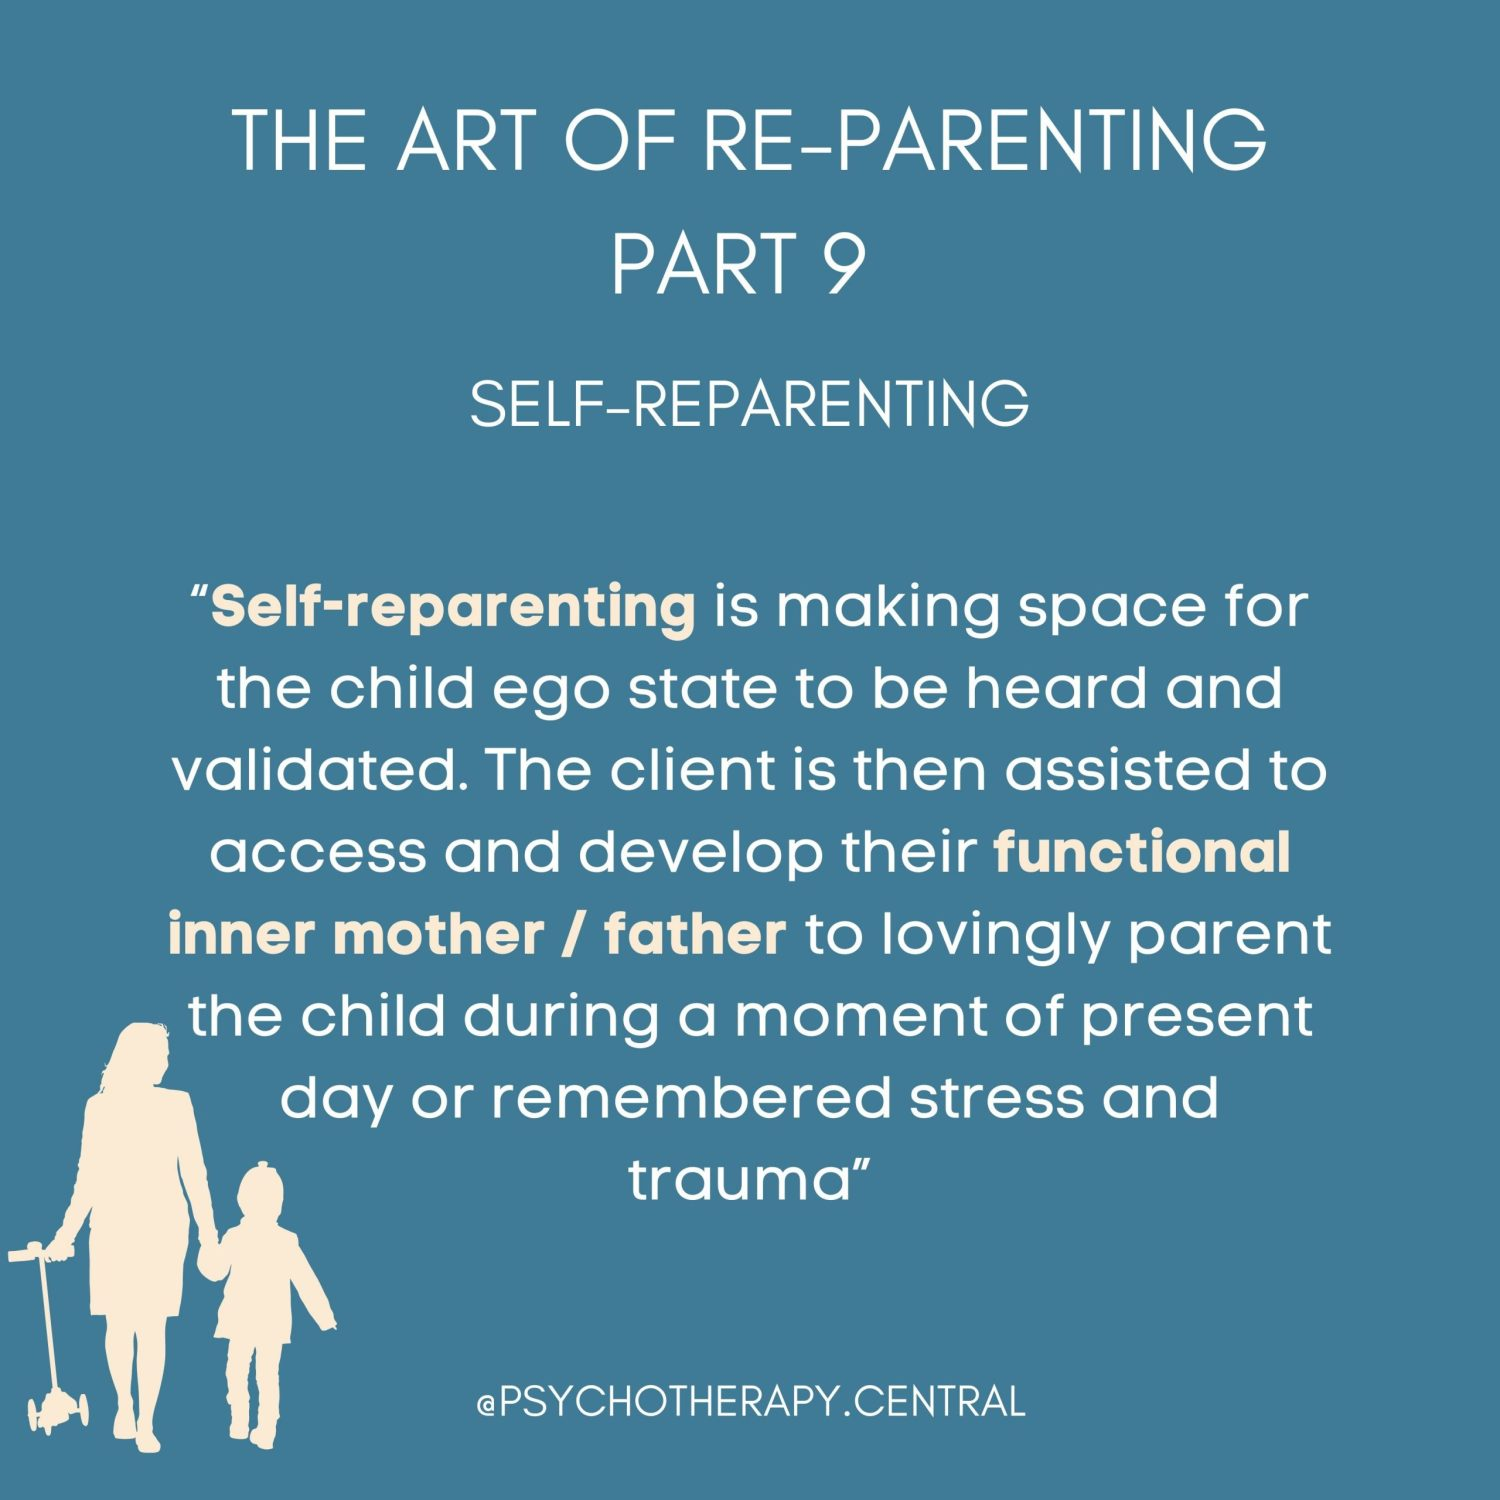 THE ART OF RE-PARENTING PART 9 SELF-REPARENTING